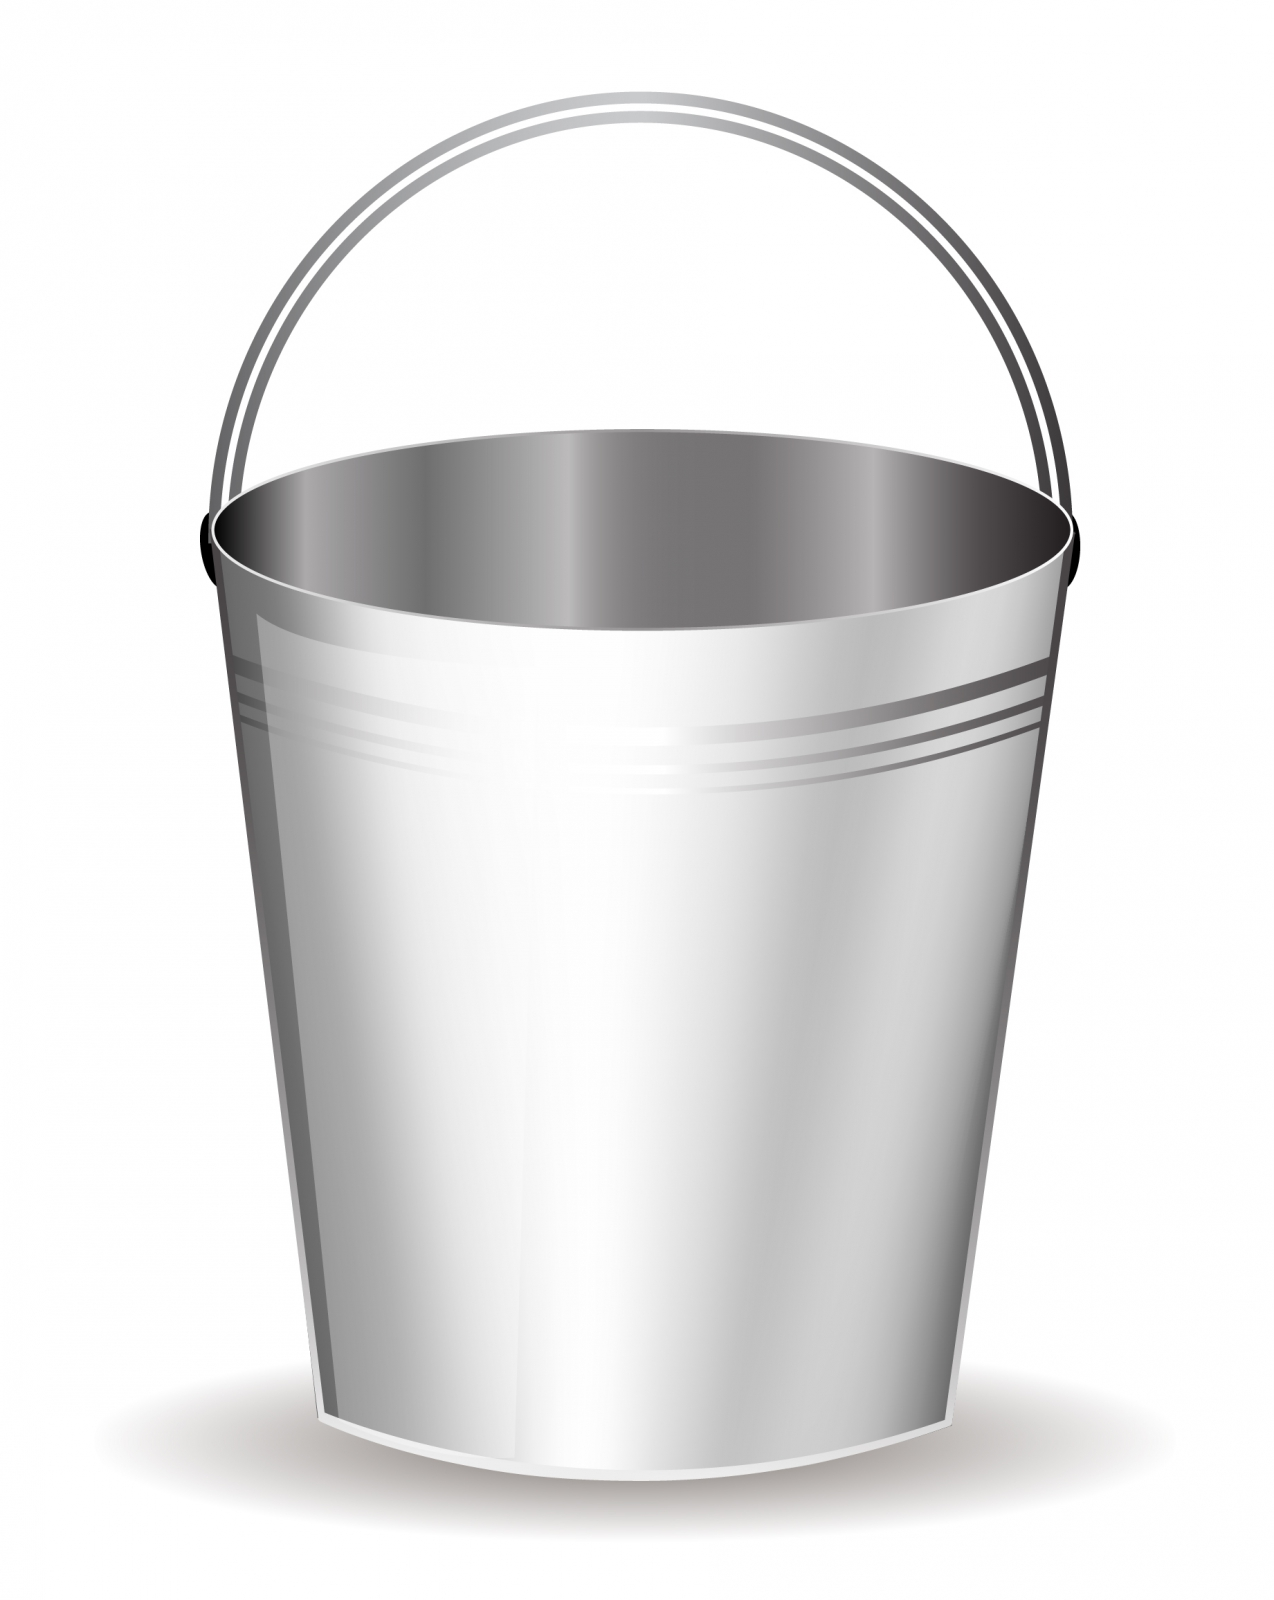 Bucket clipart metal bucket.